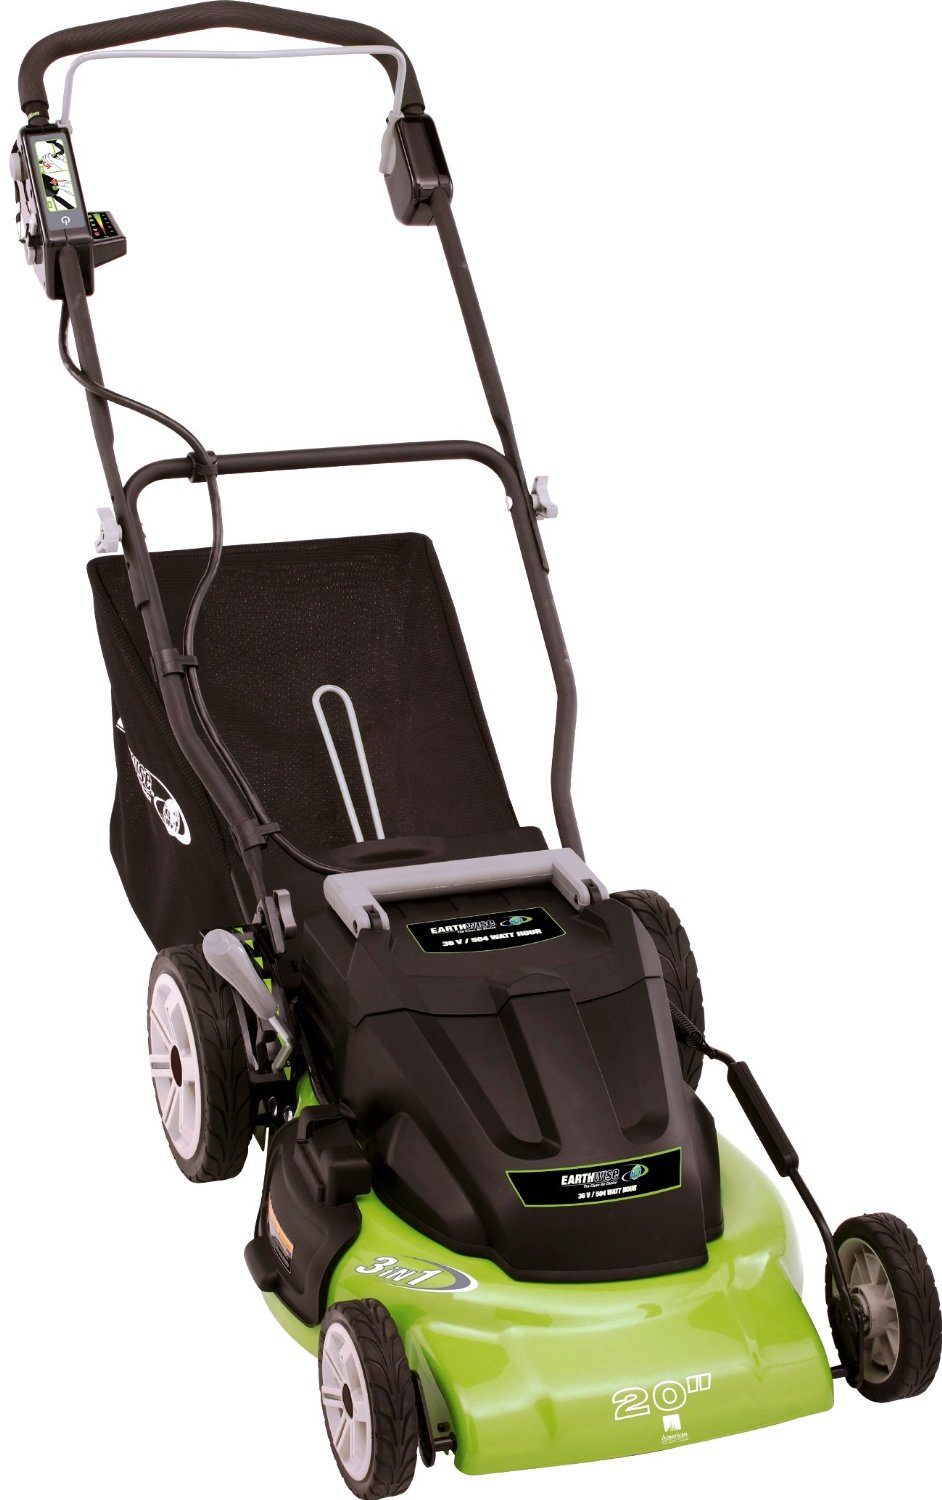 71i yq5iipl__sl1500_?download creativeworks home decor lawn & garden earthwise mower wiring diagram at couponss.co